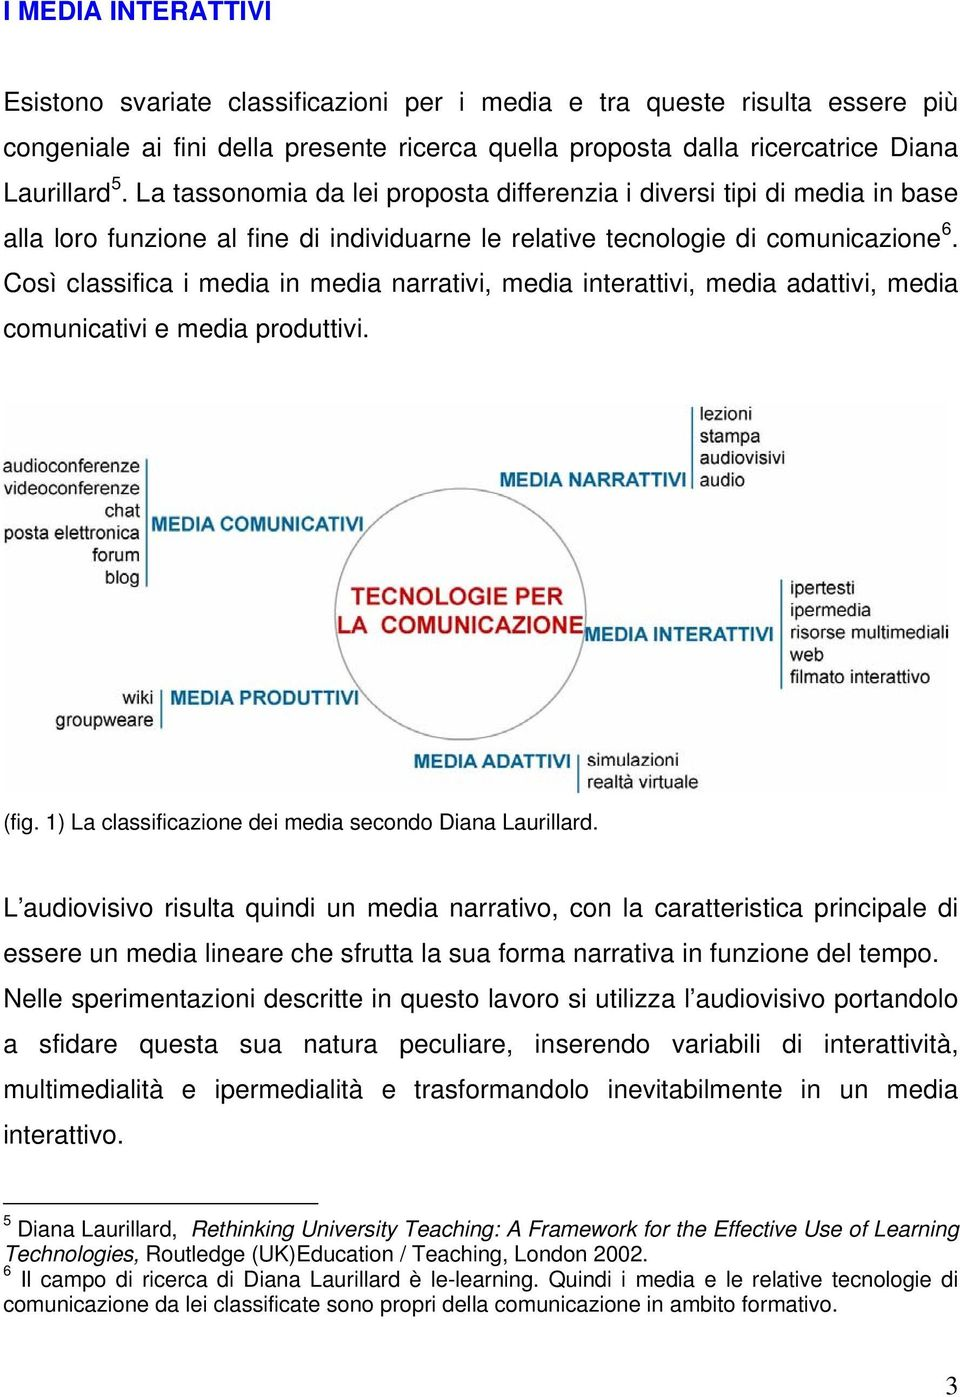 Così classifica i media in media narrativi, media interattivi, media adattivi, media comunicativi e media produttivi. (fig. 1) La classificazione dei media secondo Diana Laurillard.